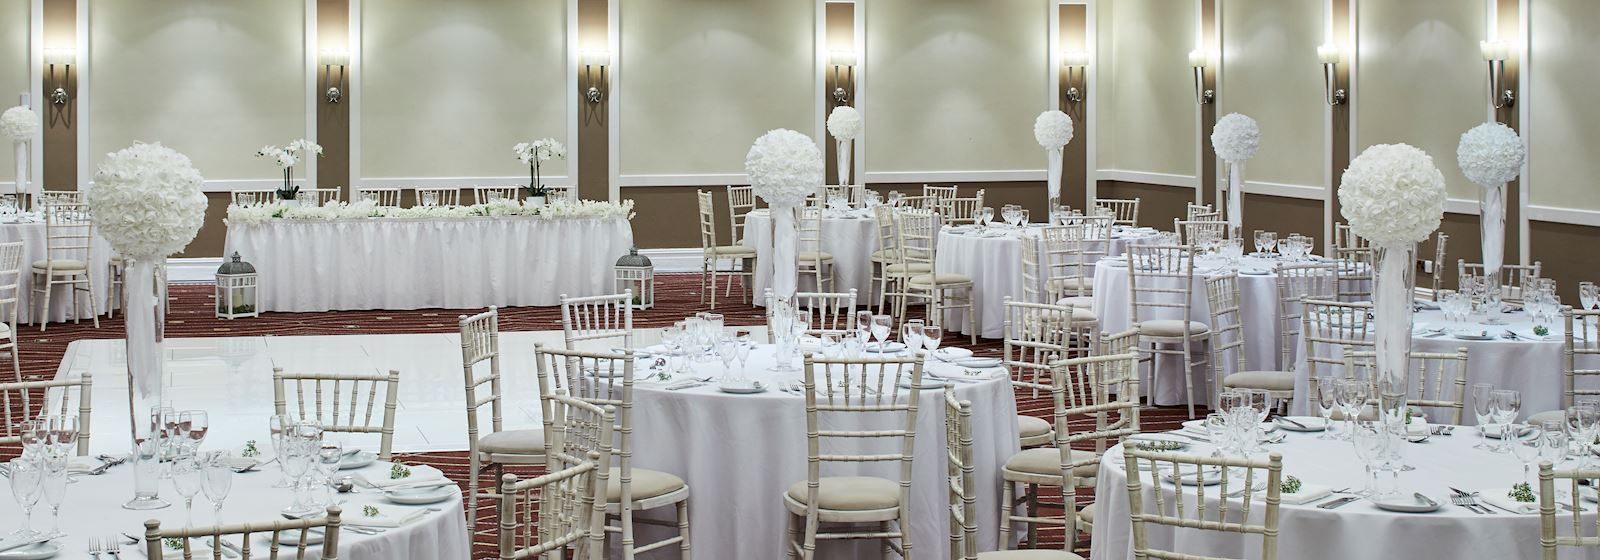 wedding party function rooms portsmouth